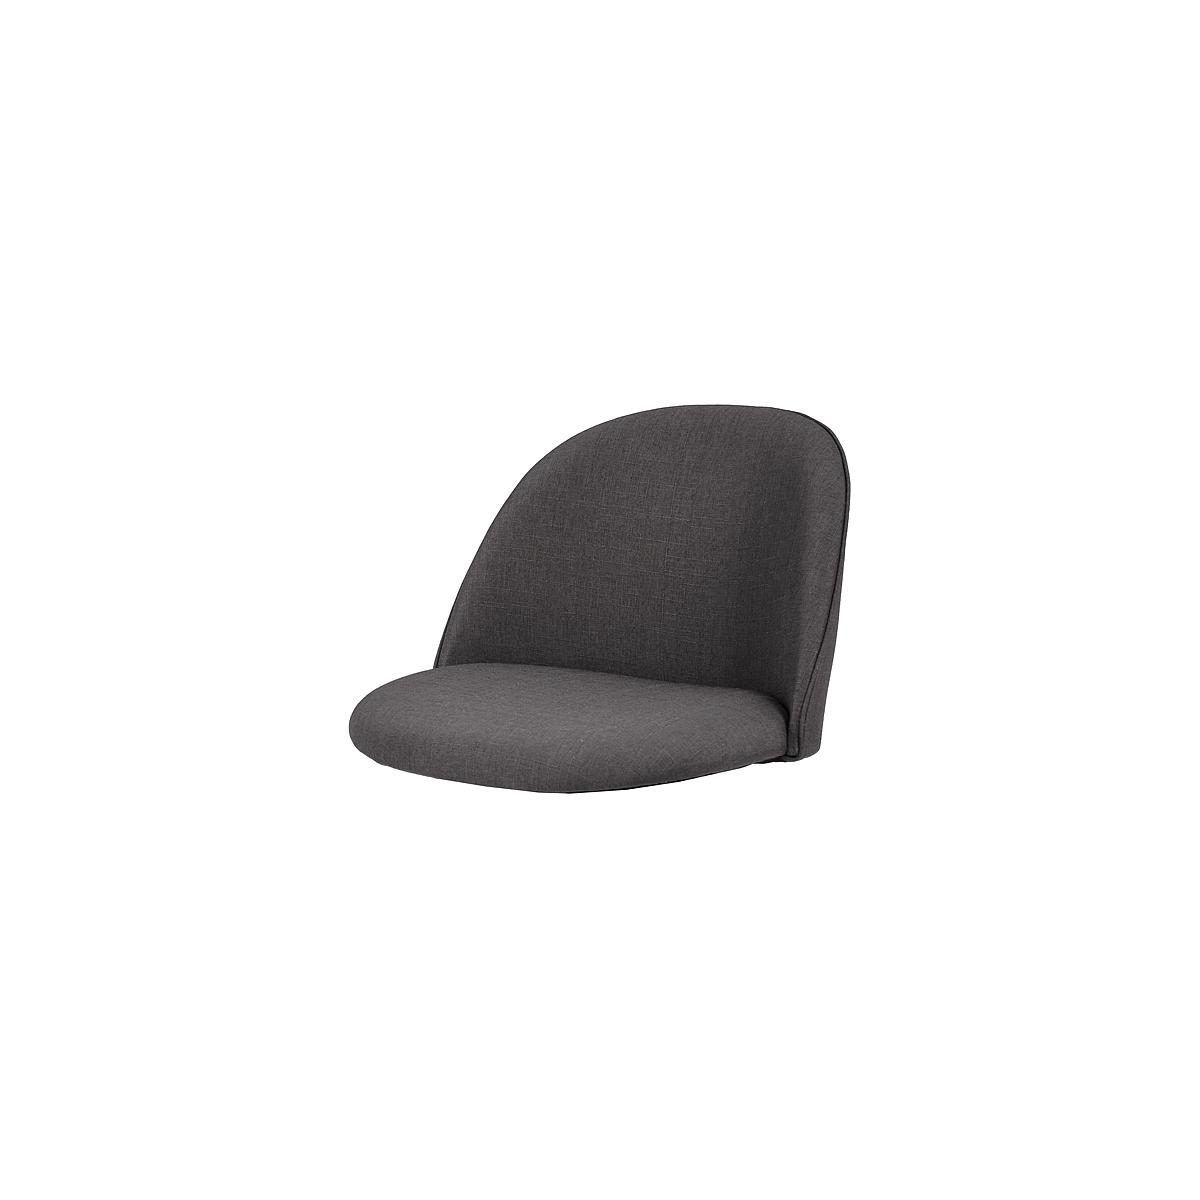 C-BAR by Tenzo Assise Ally anthracite